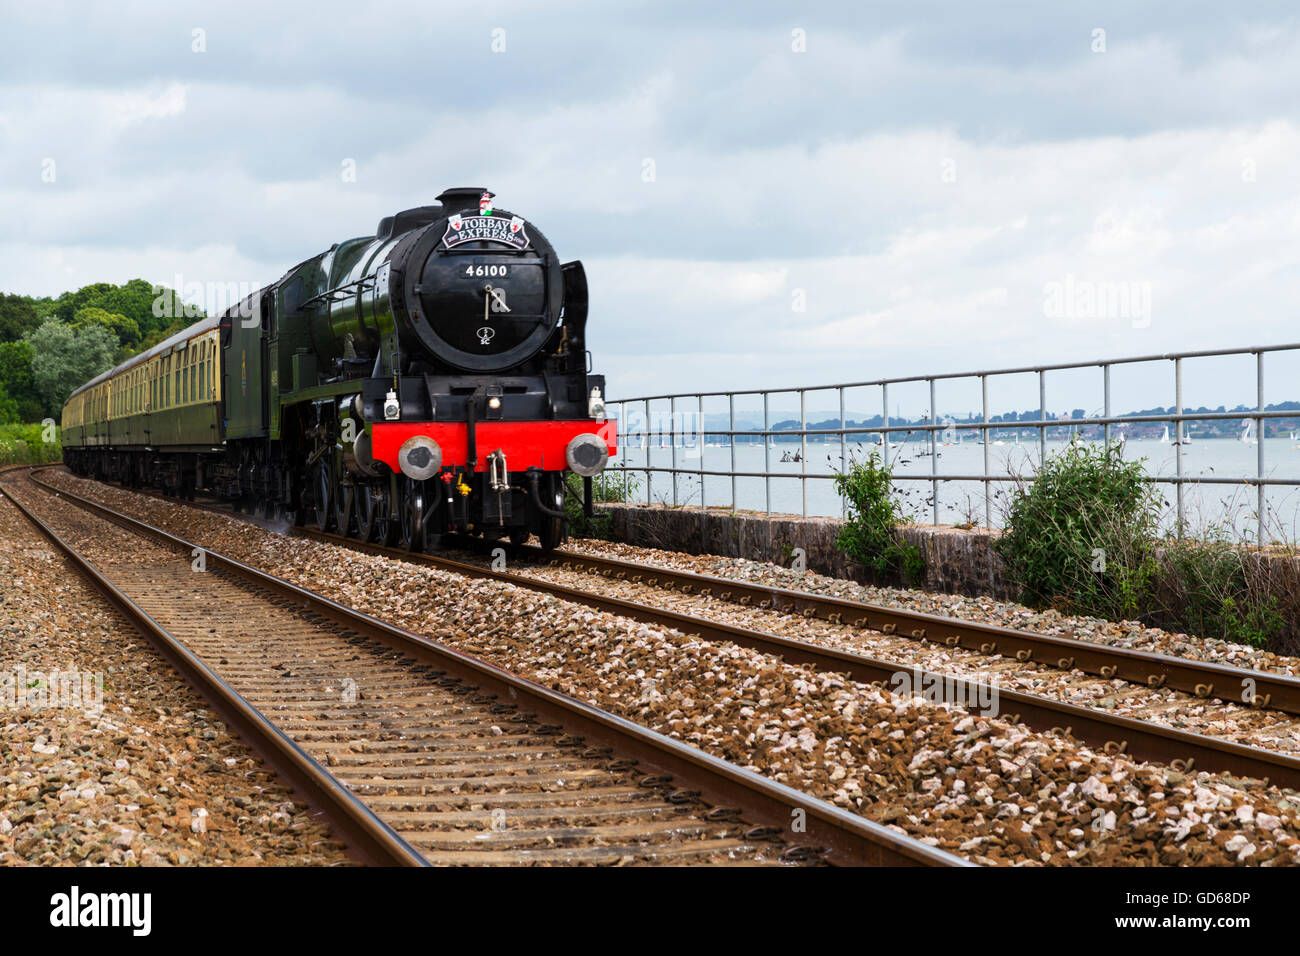 Royal Scot on location near Exeter - Stock Image